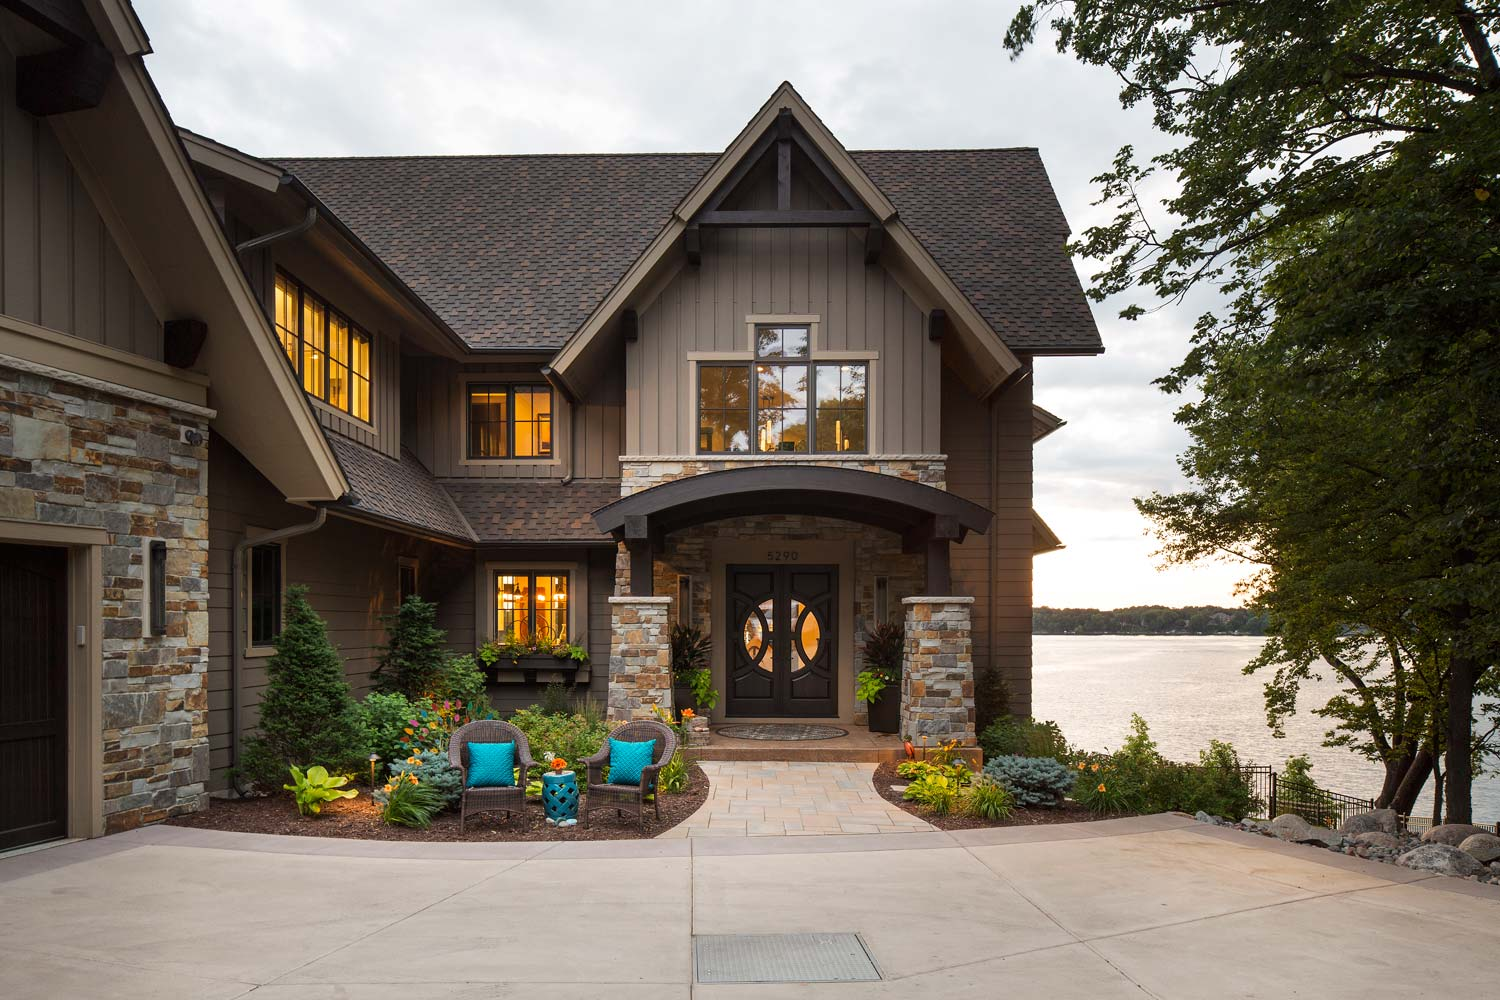 Landscaping front entry gardens in Prior Lake landscape design